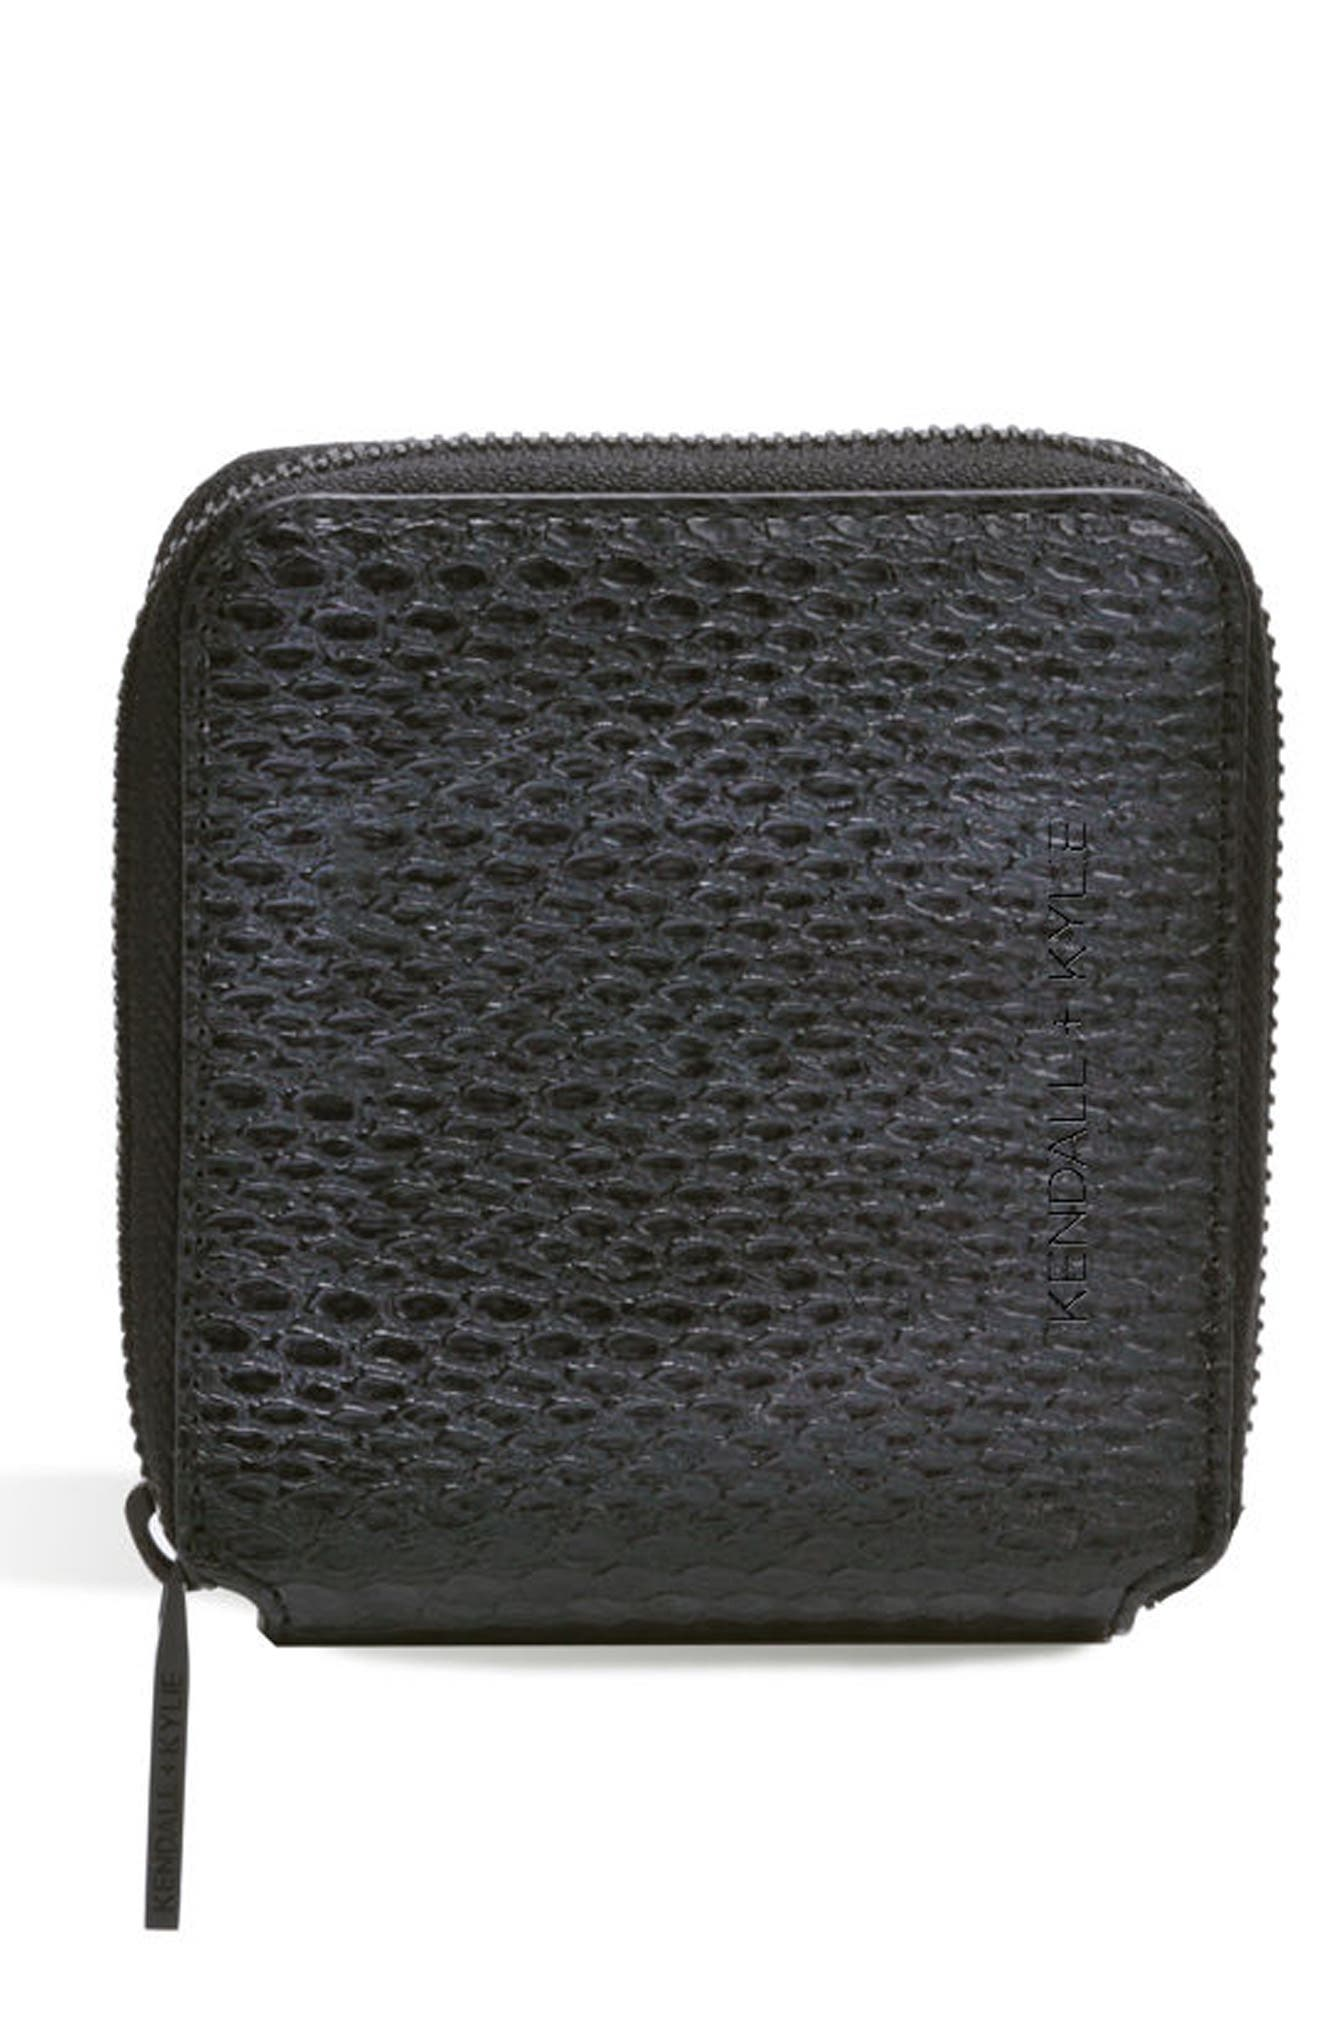 Brodie Faux Leather Wallet,                         Main,                         color, Black Snake